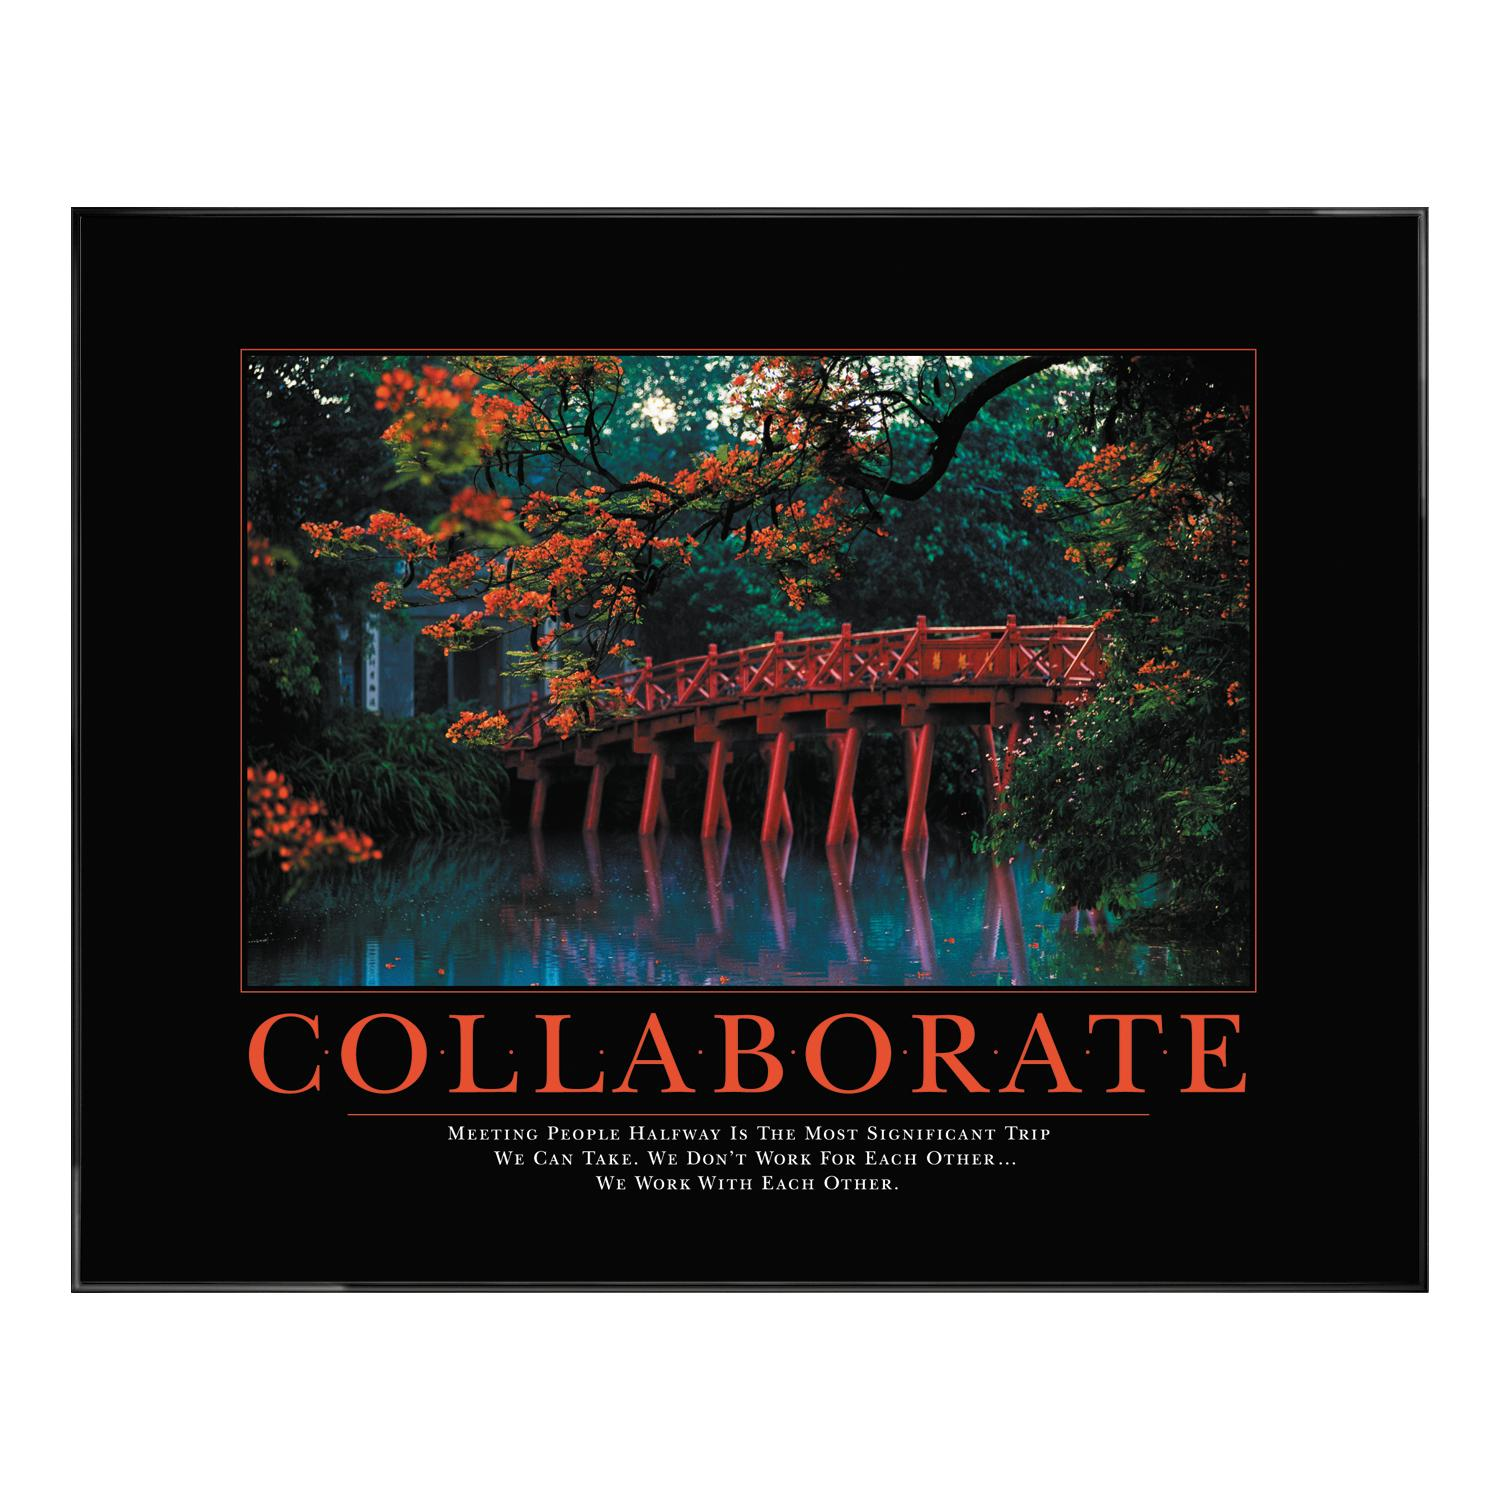 Demotivational Quotes For The Workplace Quotesgram: Inspirational Quotes On Collaboration. QuotesGram